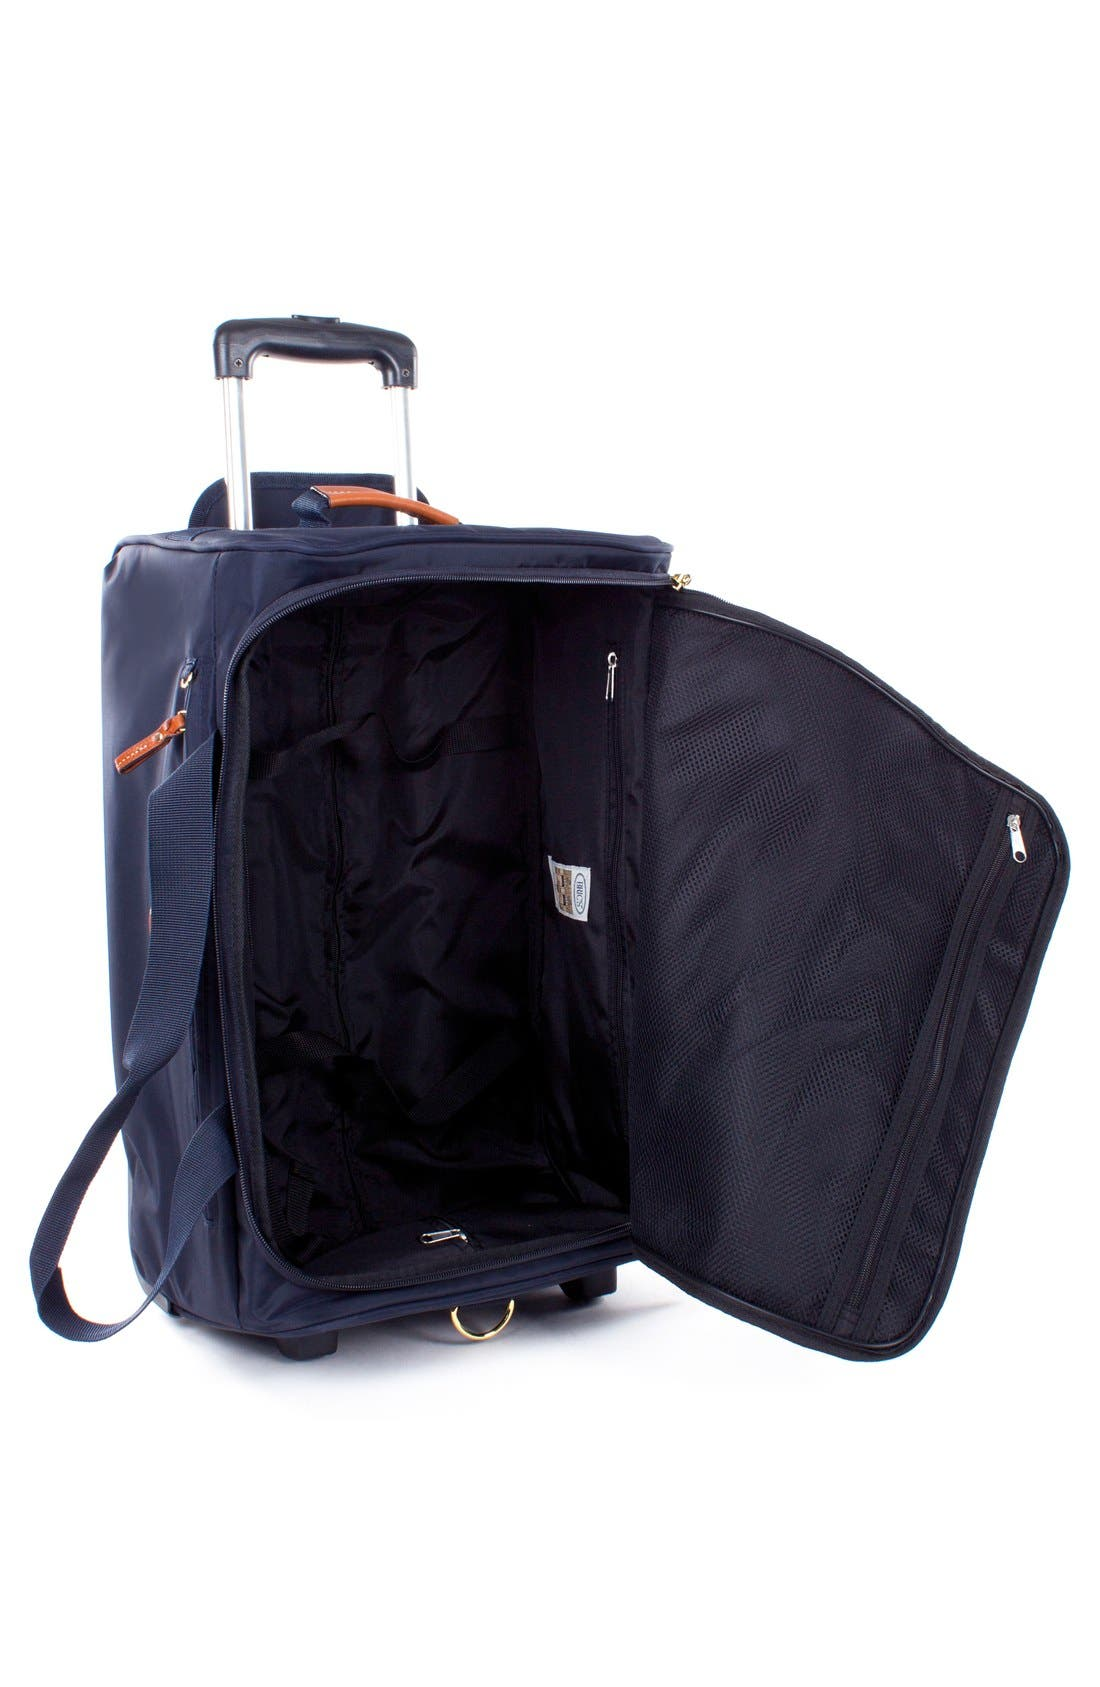 X-Bag 21-Inch Rolling Carry-On Duffel Bag,                             Alternate thumbnail 4, color,                             NAVY